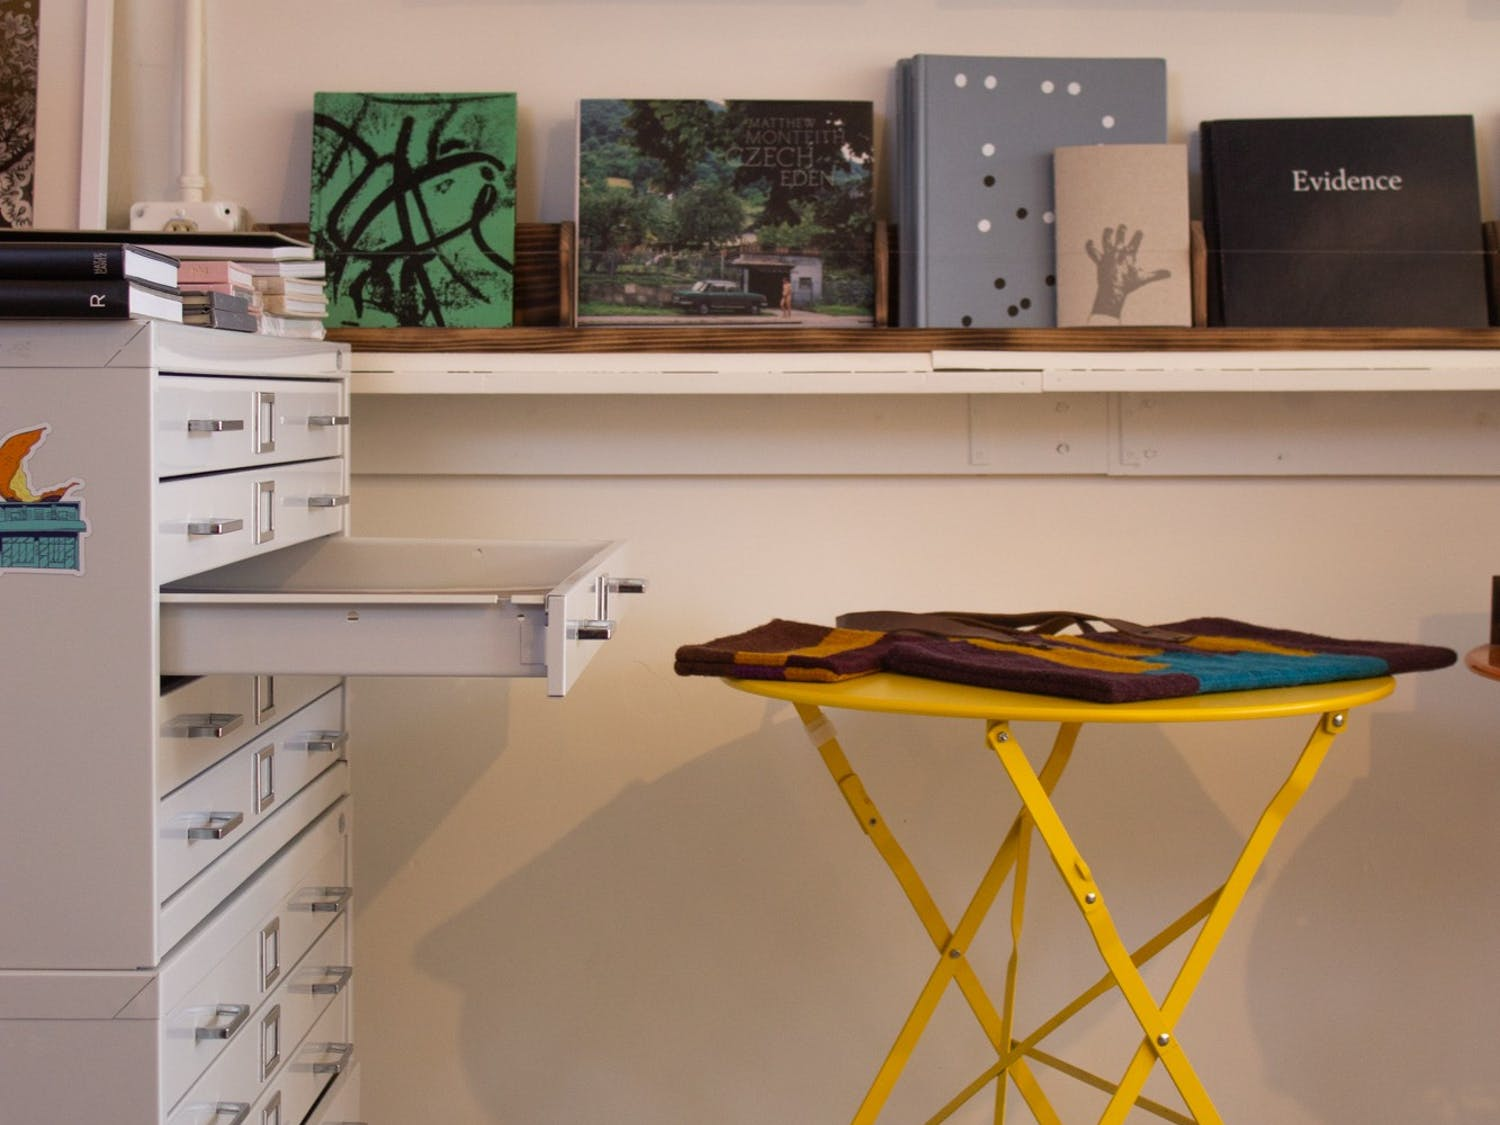 Books are on display at the Peel Gallery located on W.Rosemary Street in Carrboro.